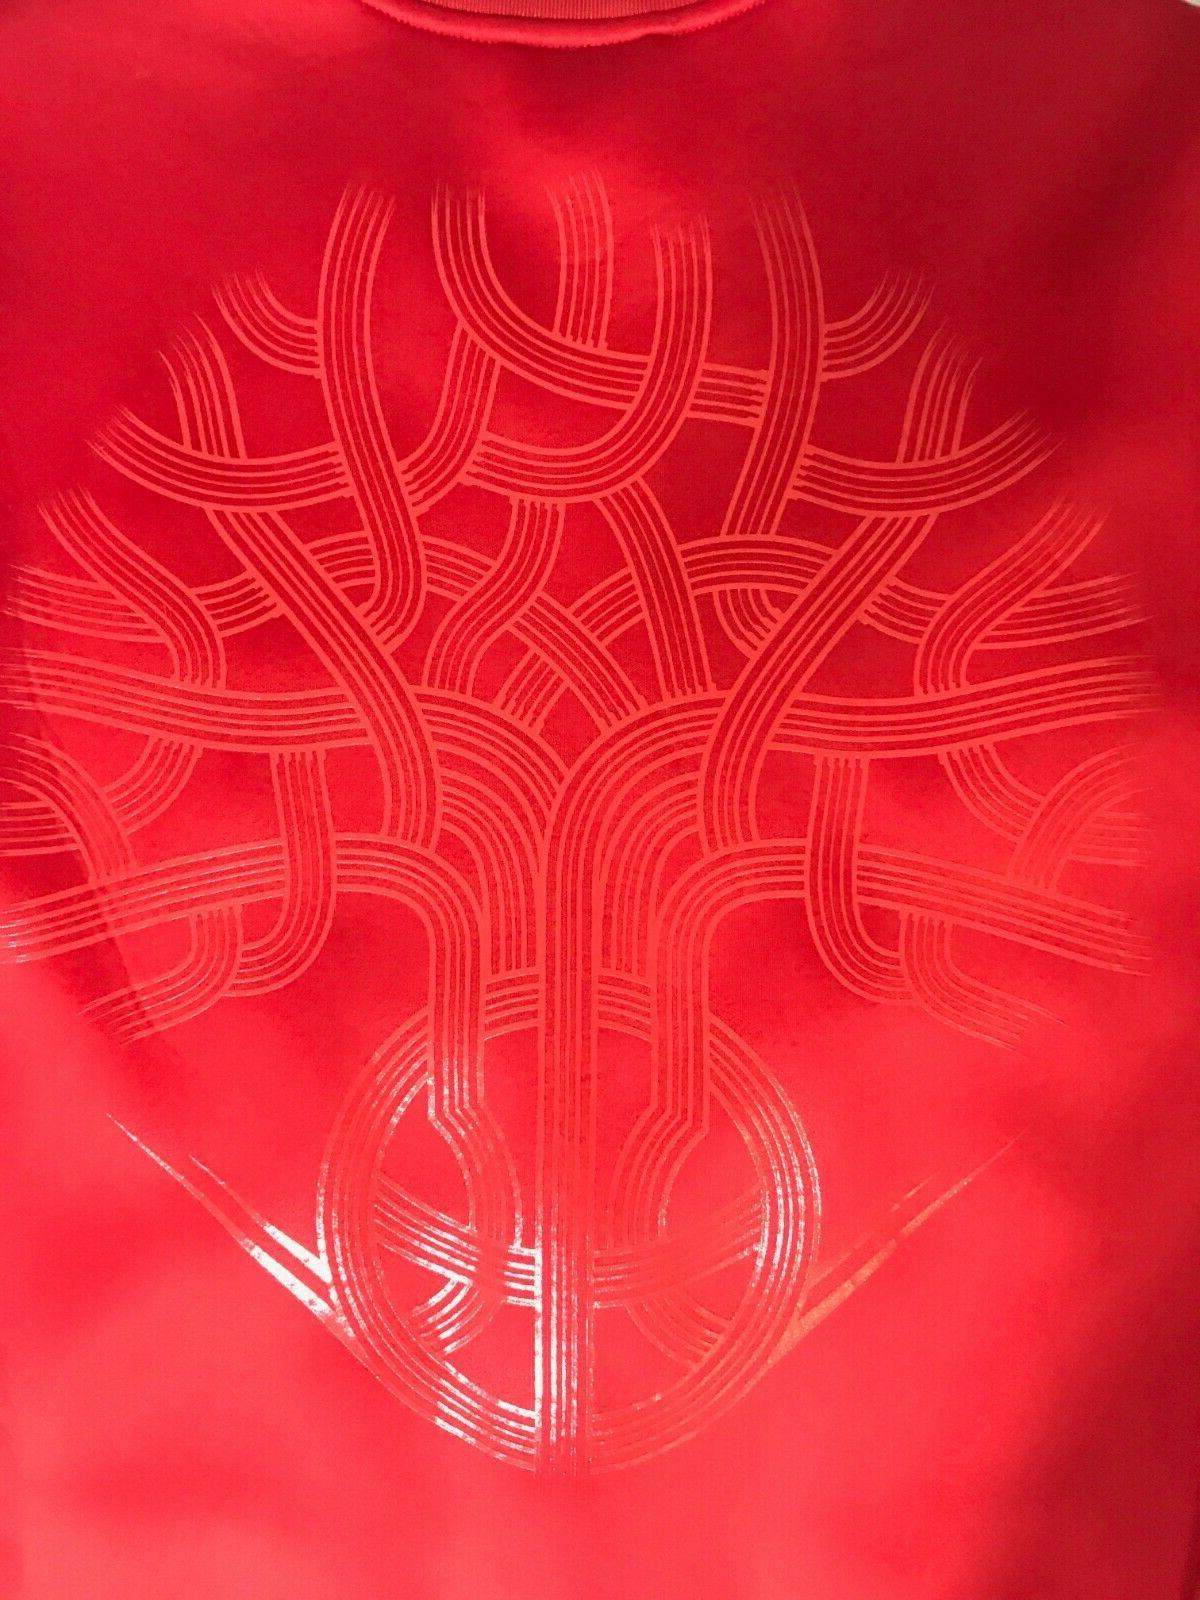 NEW Men's Red Dame Embossed 2XL AO1644